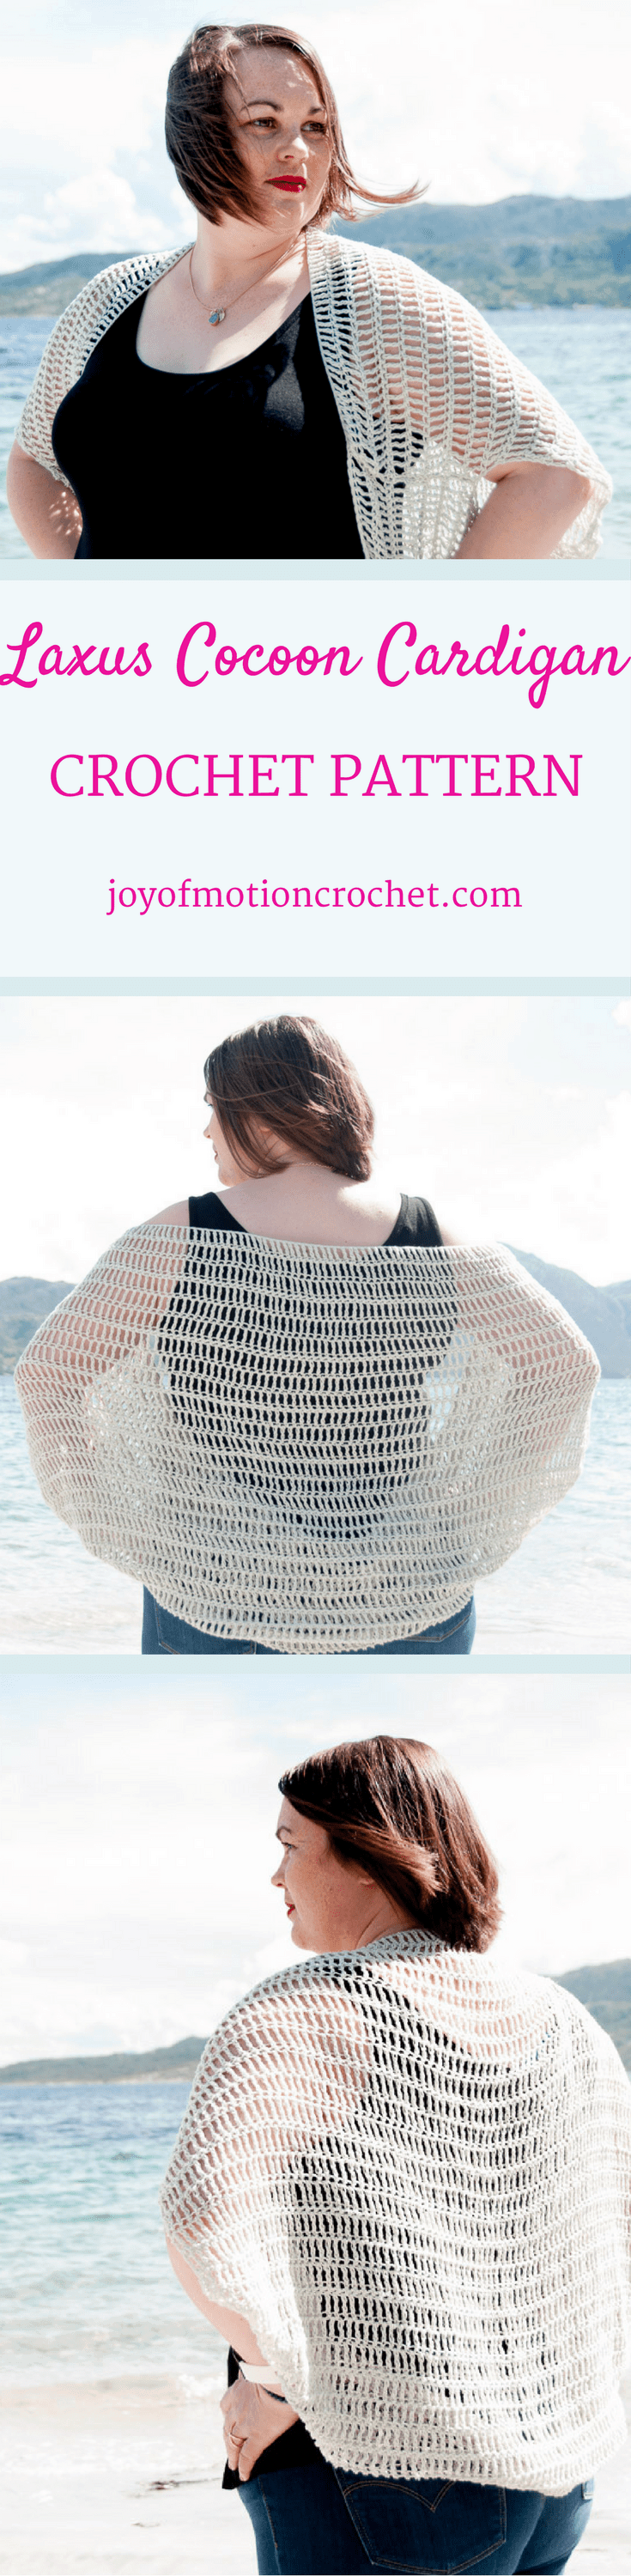 The Laxus Cocoon Cardigan Crochet pattern. Beginner crochet pattern. Woman's cocoon cardigan. Cocoon sweater. Crochet cocoon cardigan. Crochet Cocoon Sweater. Crochet cocoon blanket sweater.  Crochet cocoon shrug.  Crochet cocoon pattern.